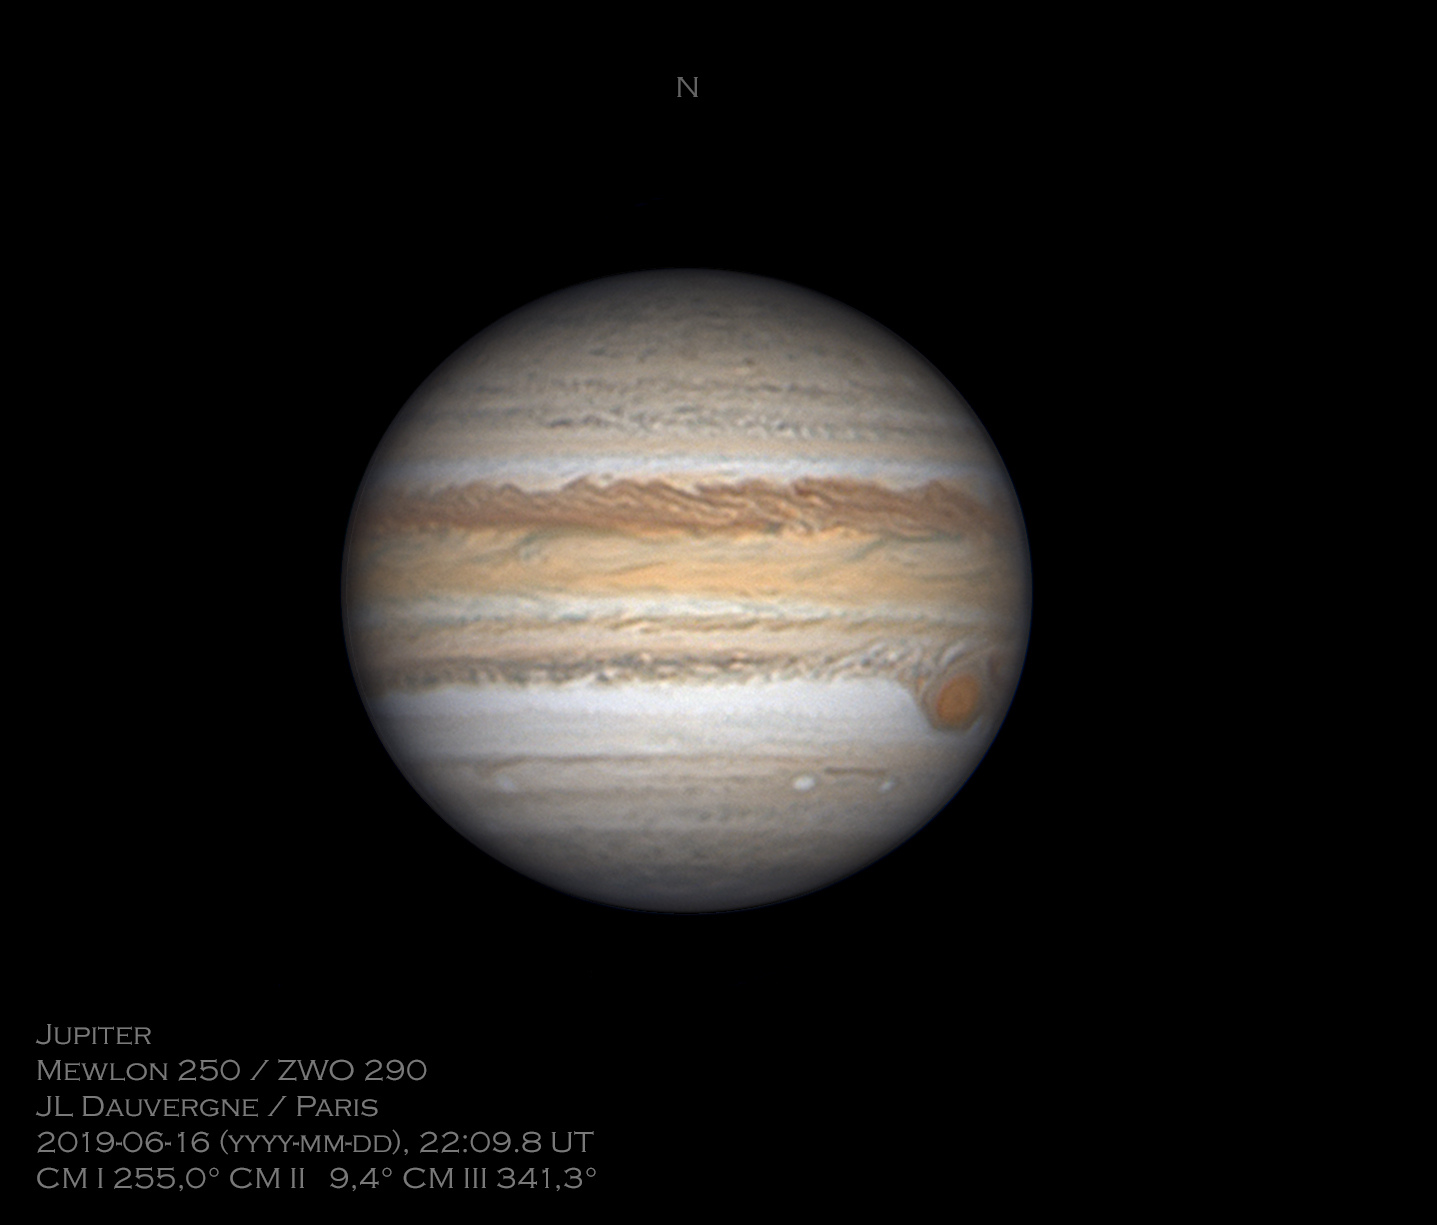 2019-06-16-2209_8-L-Jupiter_ZWO ASI290MM Mini_lapl5_ap171 copie.jpg